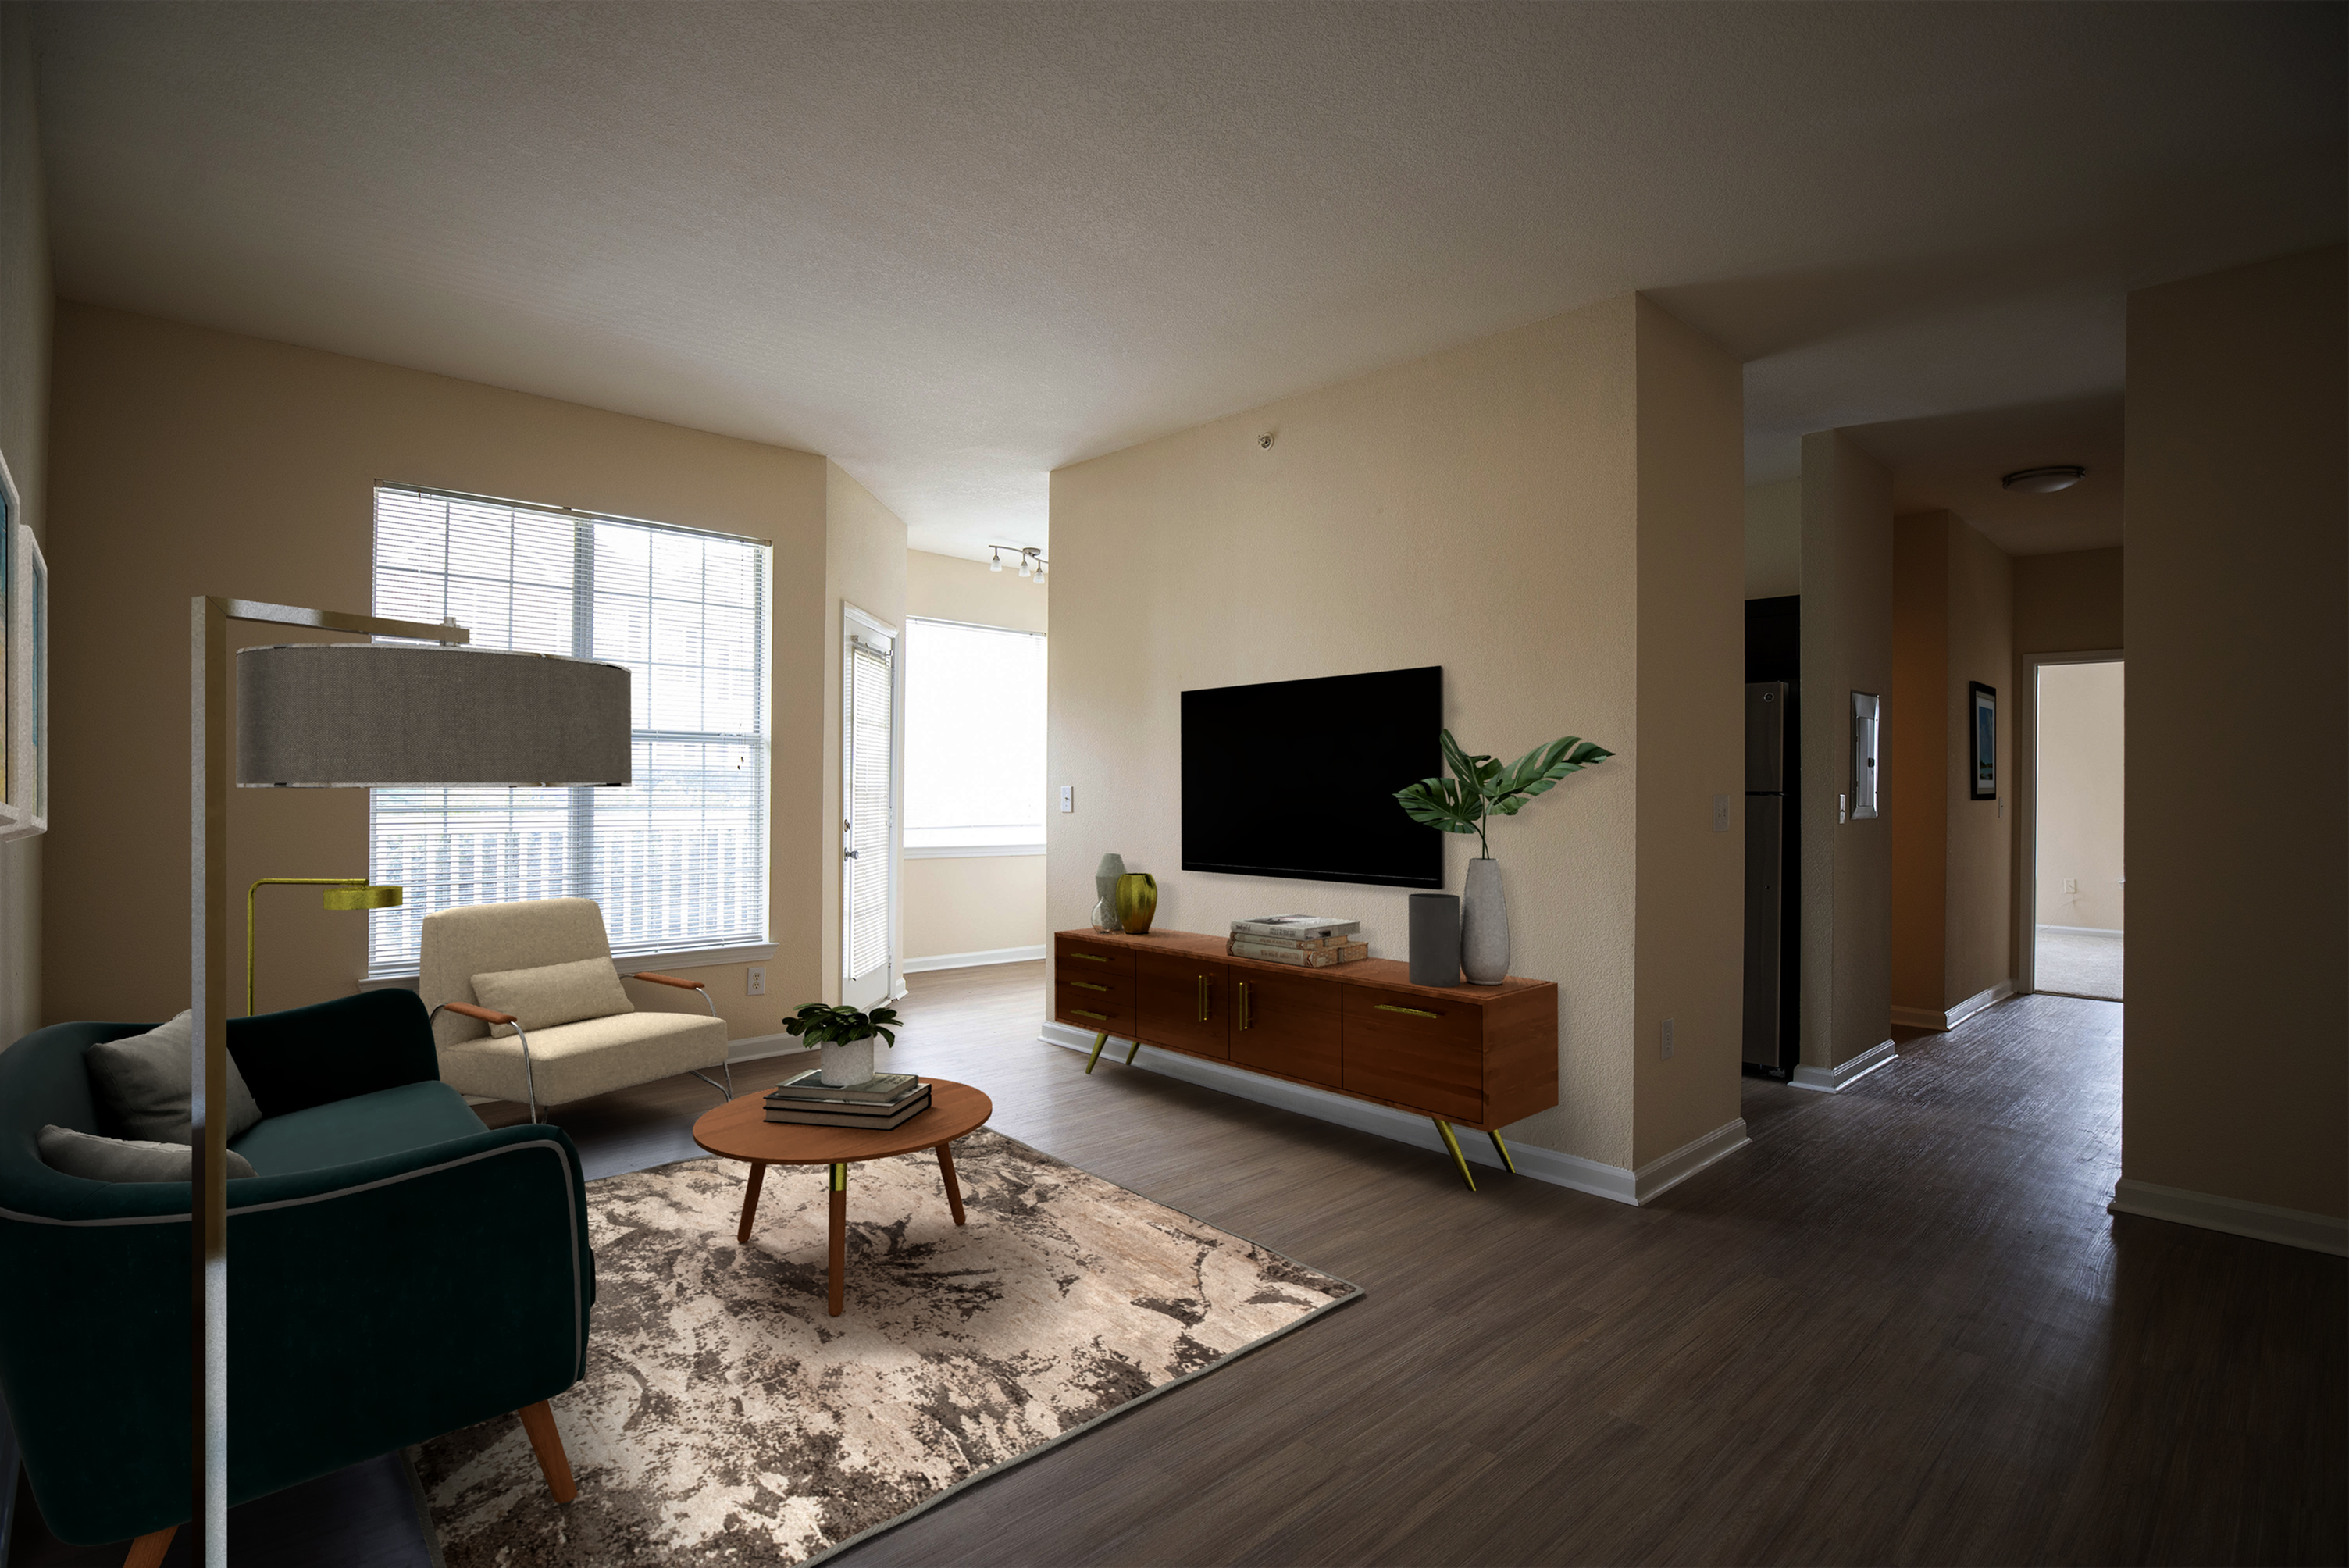 Apartments For Rent in Williamsburg | Spotswood Commons